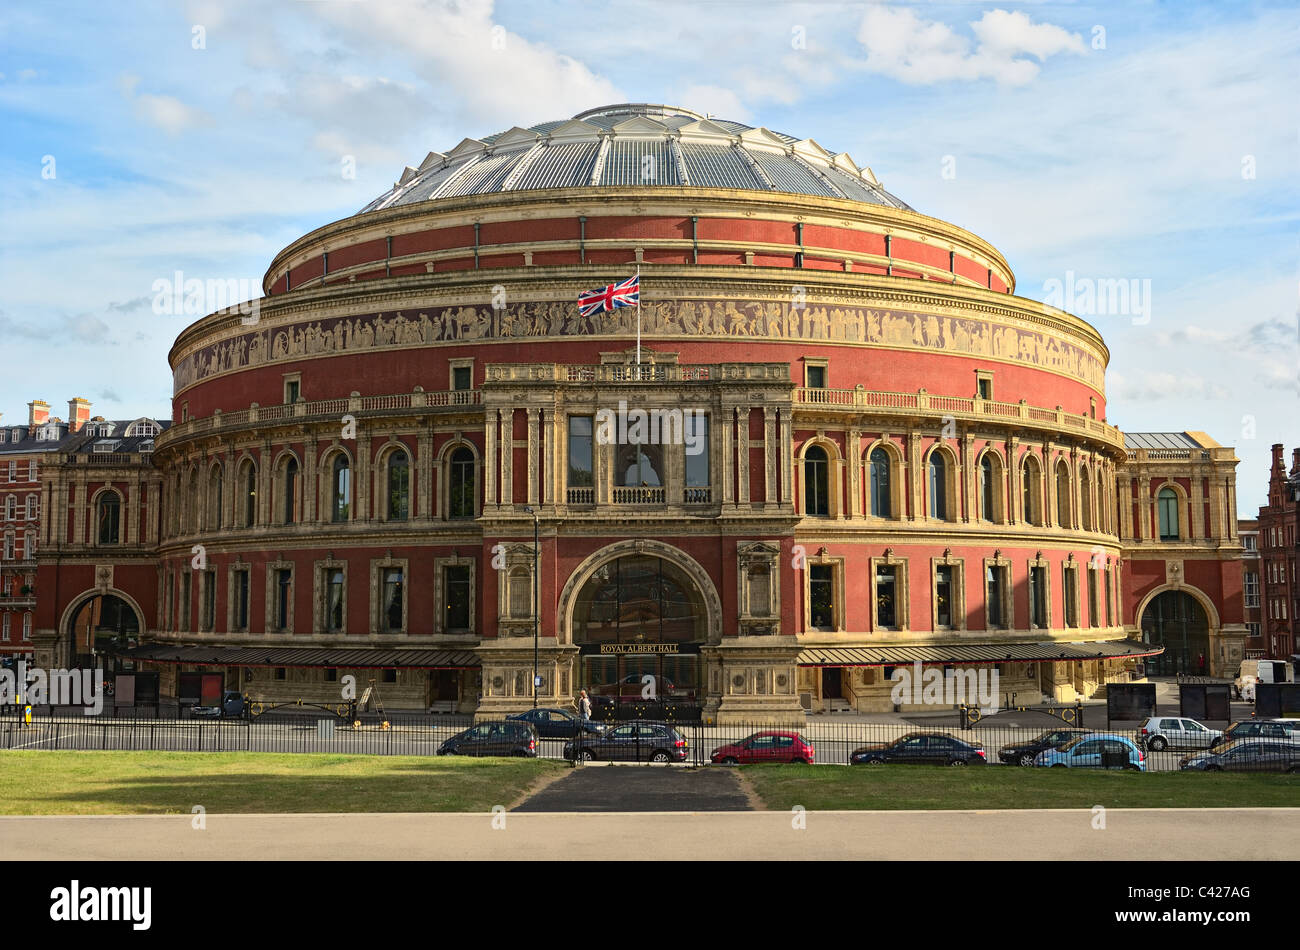 Royal Albert Hall, London, England, UK, in late afternoon daylight - Stock Image